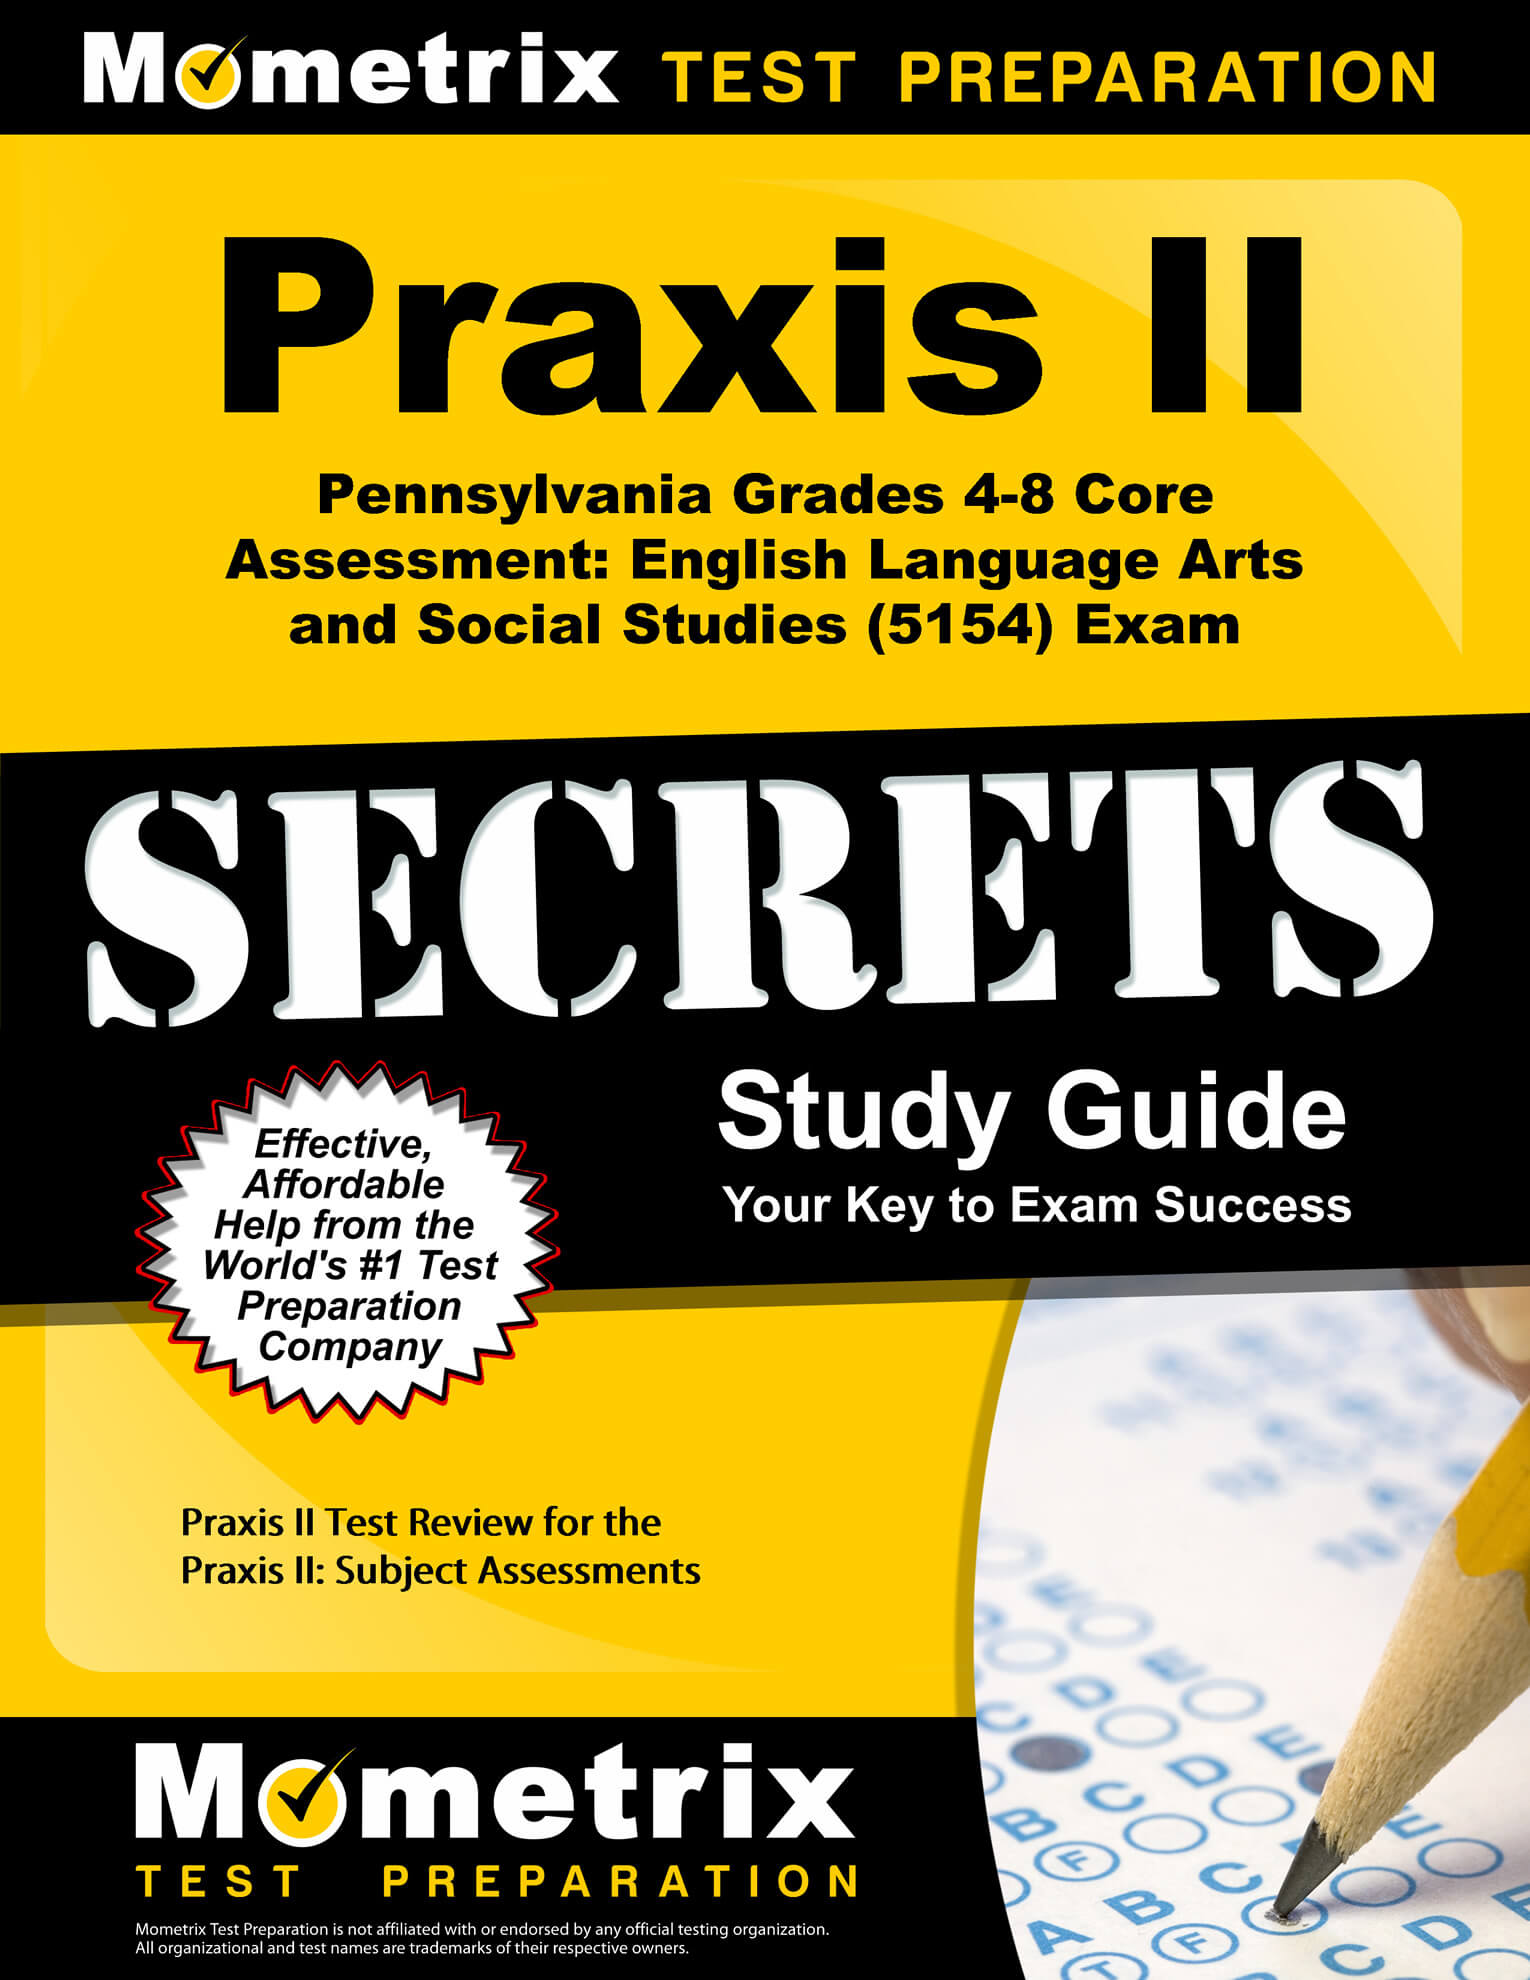 Praxis II Pennsylvania Grades 4-8 Core Assessment: English Language Arts and Social Studies Study Guide